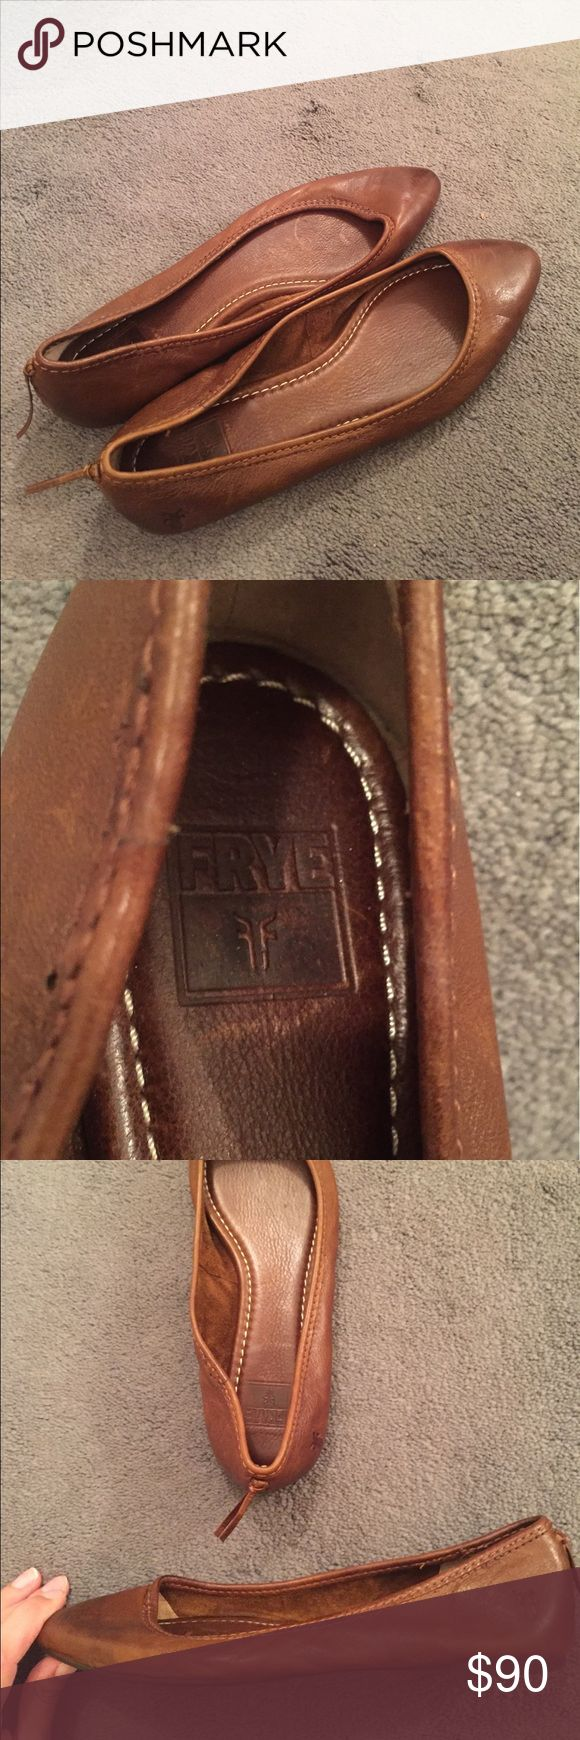 Frye Flats Usually the Frye company makes boots, but these are perfect for summer! They are leather with cute stitching details, and mini tassels on the back. I believe these have been worn once, but they came with the worn-out look. These do fit pretty narrow, and can fit a size 7.5 or 8. Offers welcome! Frye Shoes Flats & Loafers